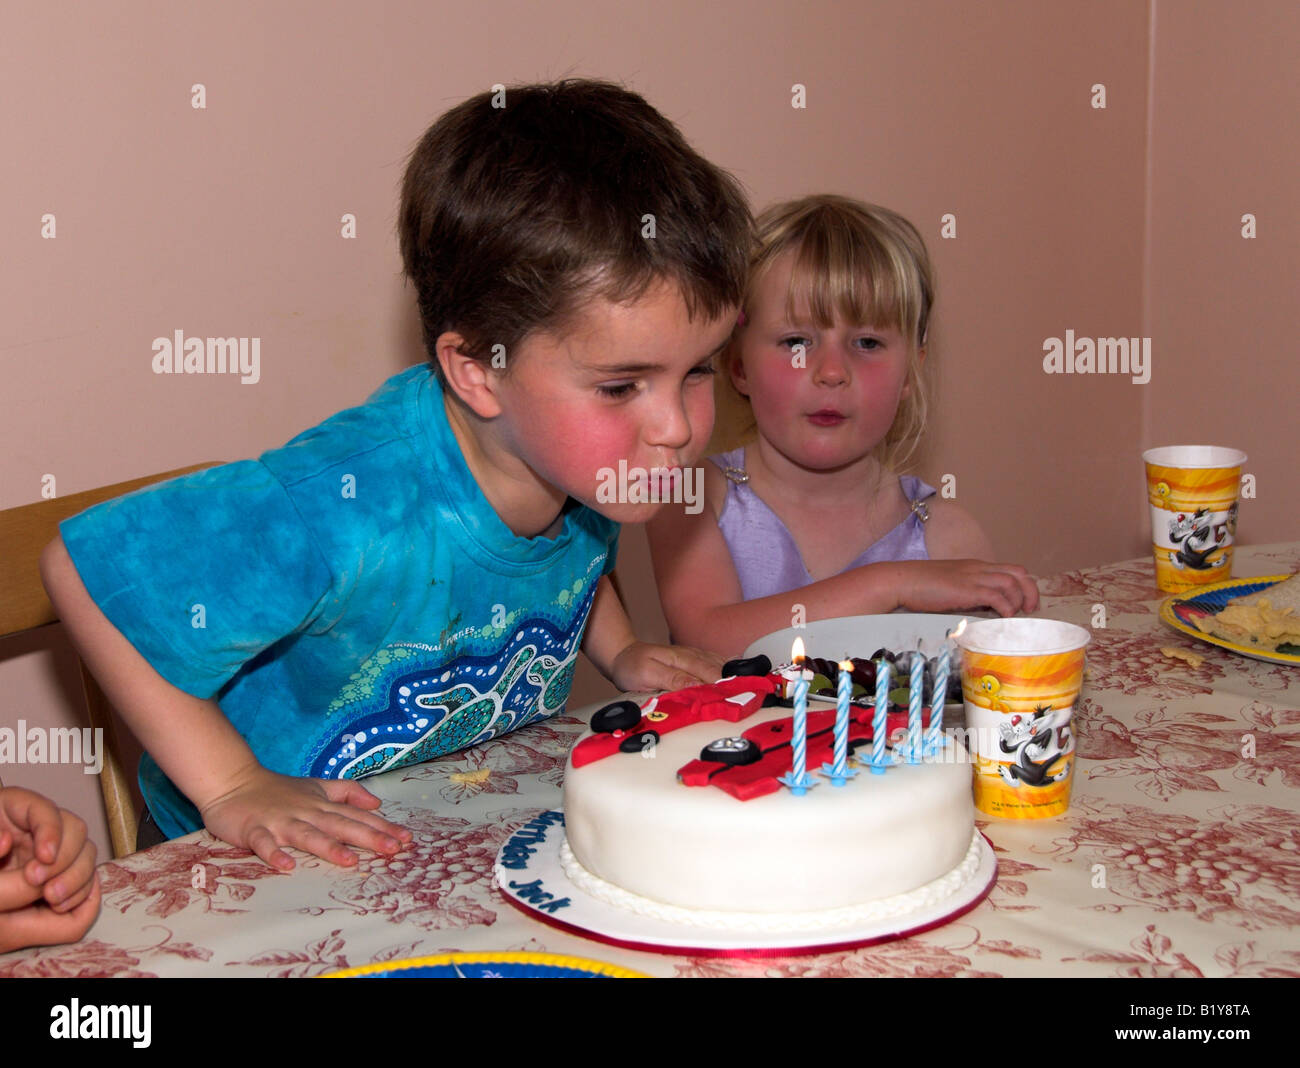 Boy Aged 5 Blowing Out Candles On A Novelty Birthday Cake